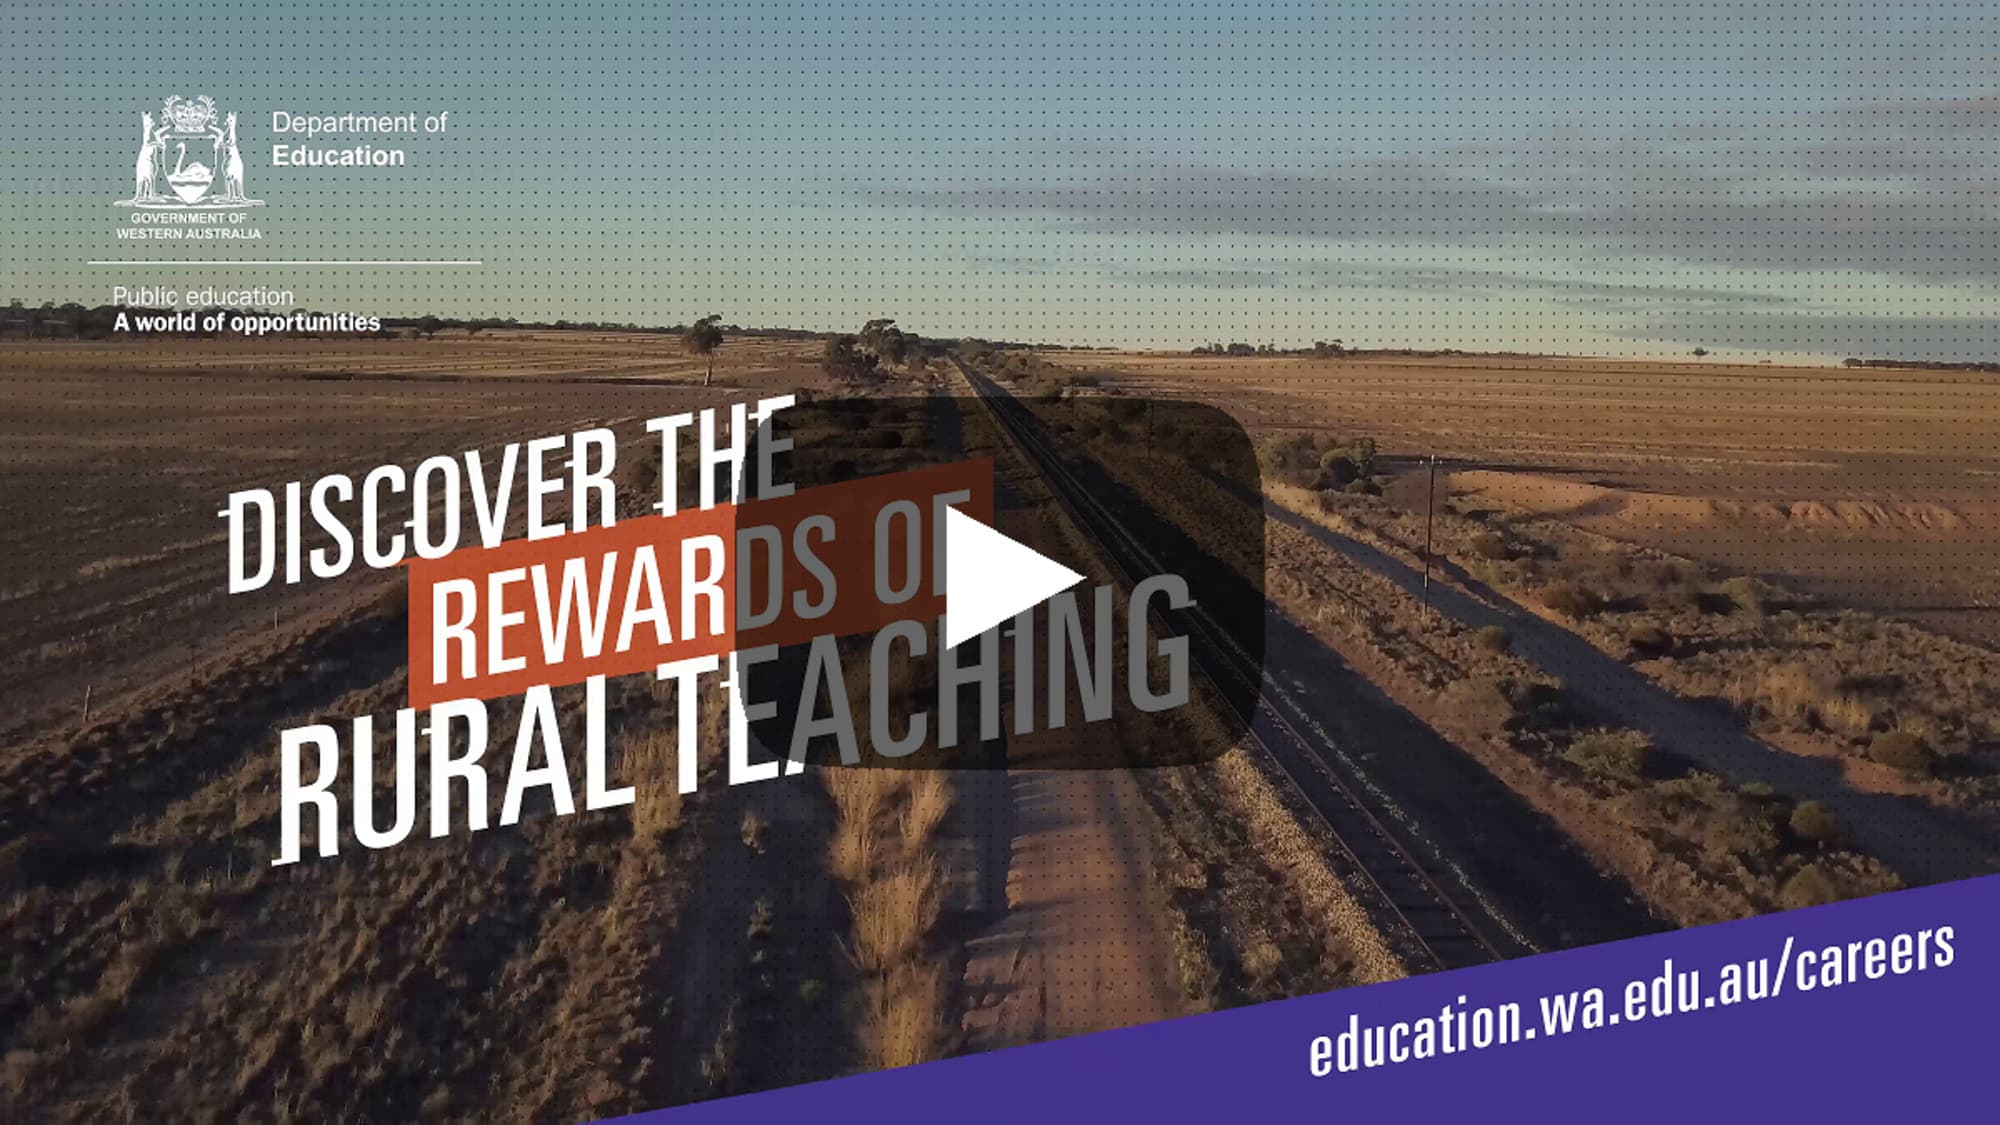 Teach in rural, regional and remote WA - Department of Education